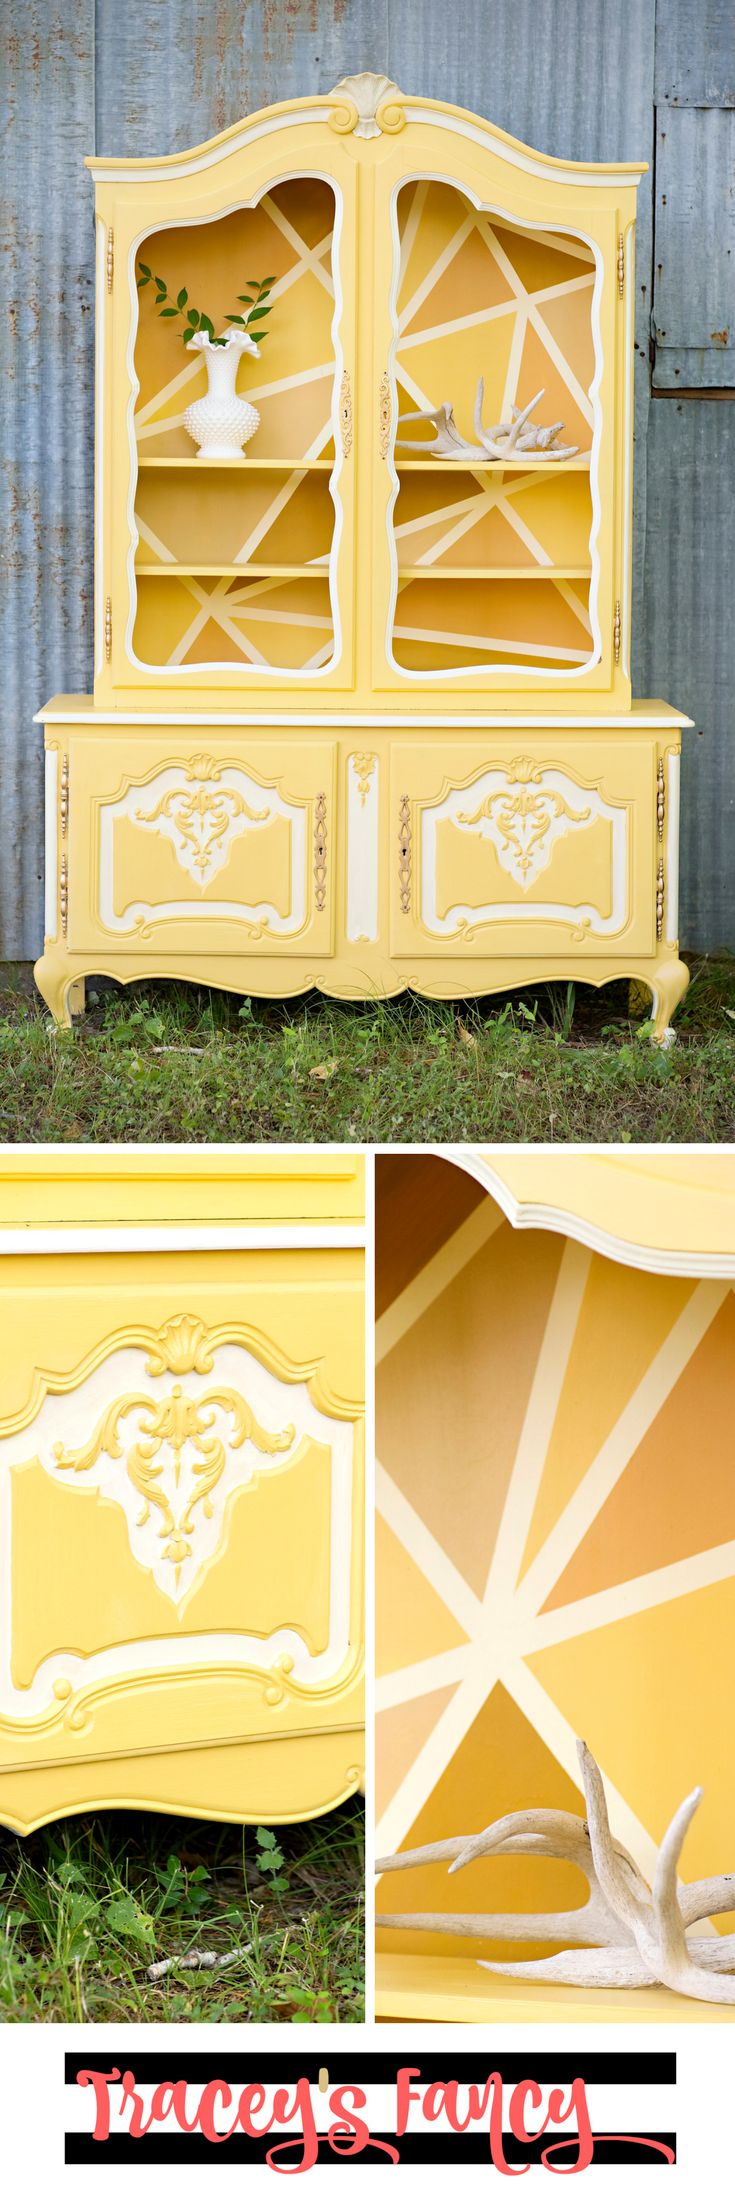 Different Shades Of Yellow 343 best color: yellow images on pinterest | yellow, furniture